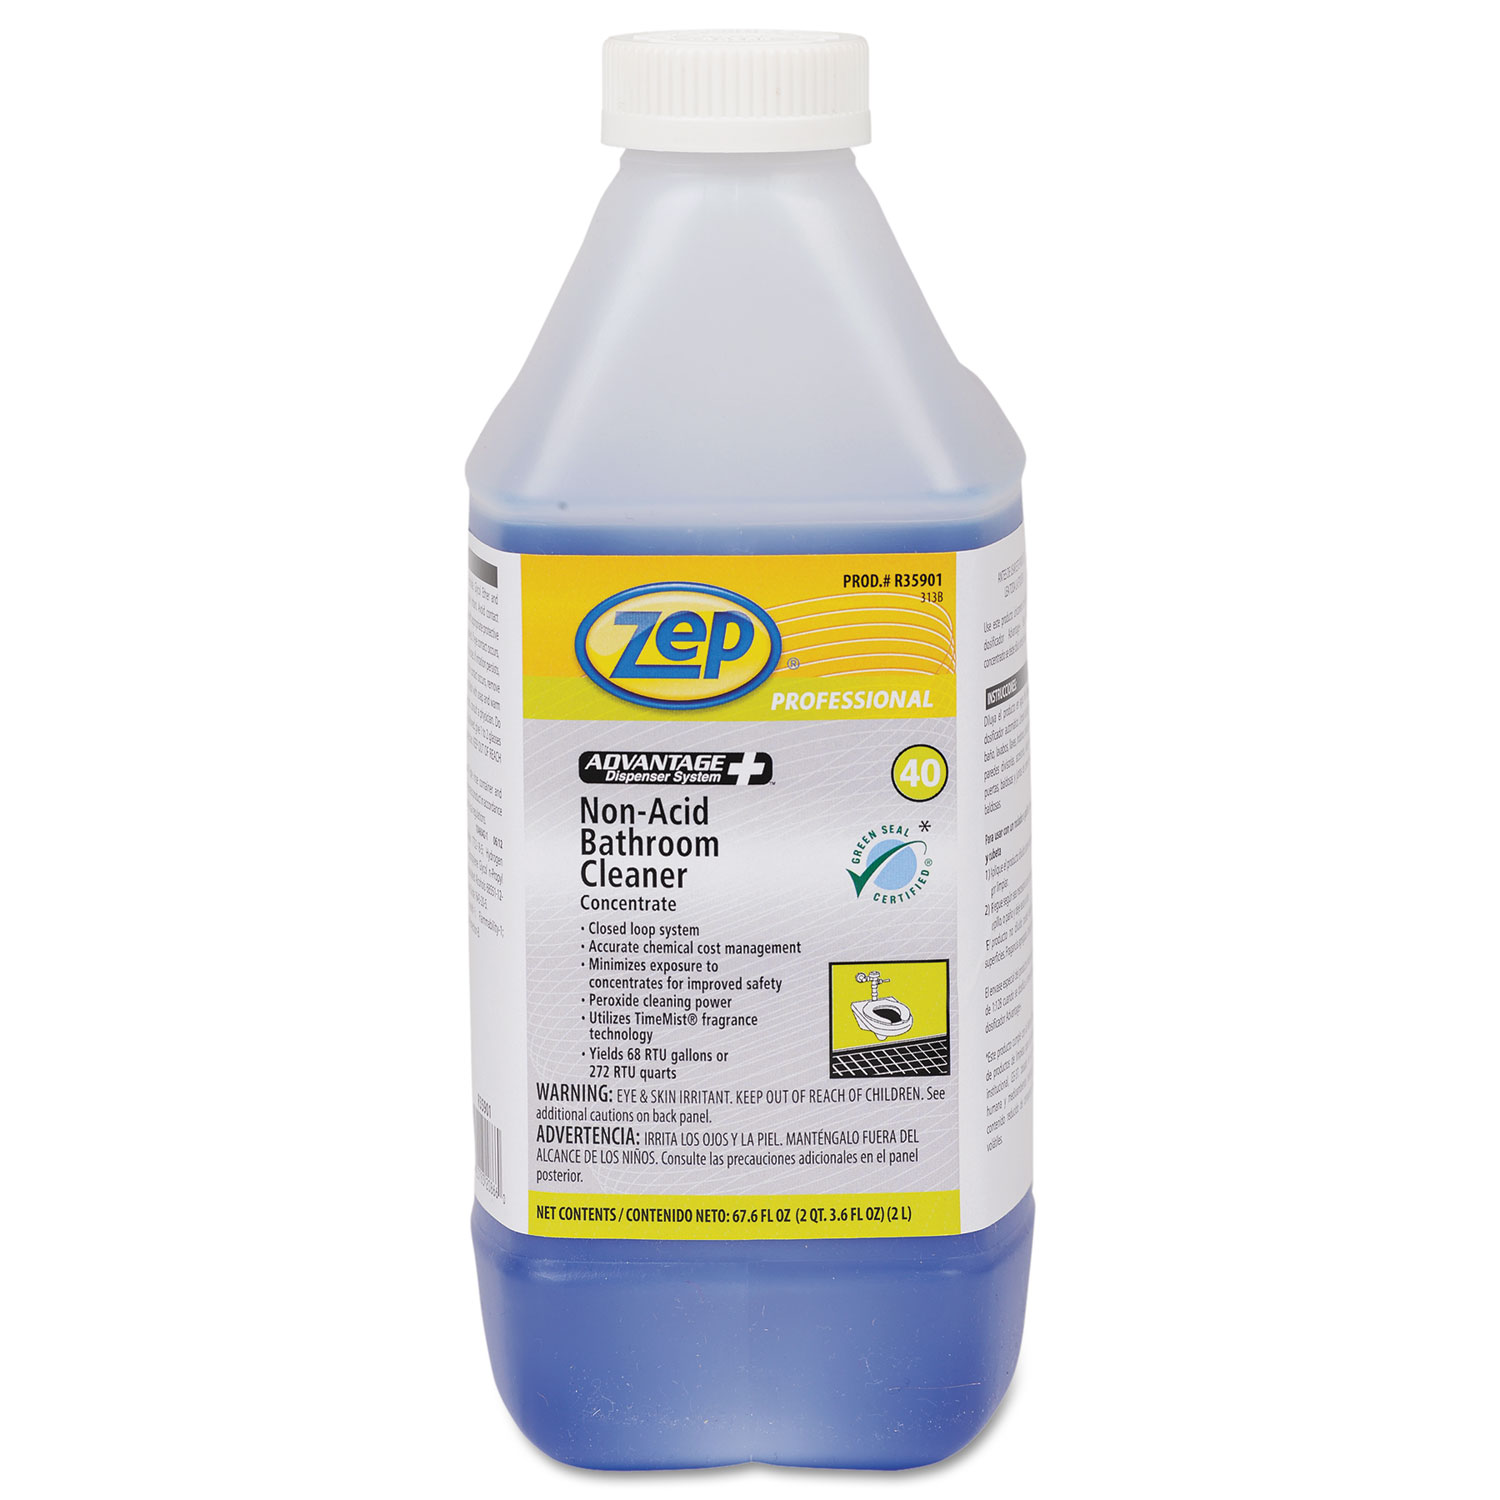 Advantage Concentrated NonAcid Bathroom Cleaner By Zep - Bathroom cleaner liquid